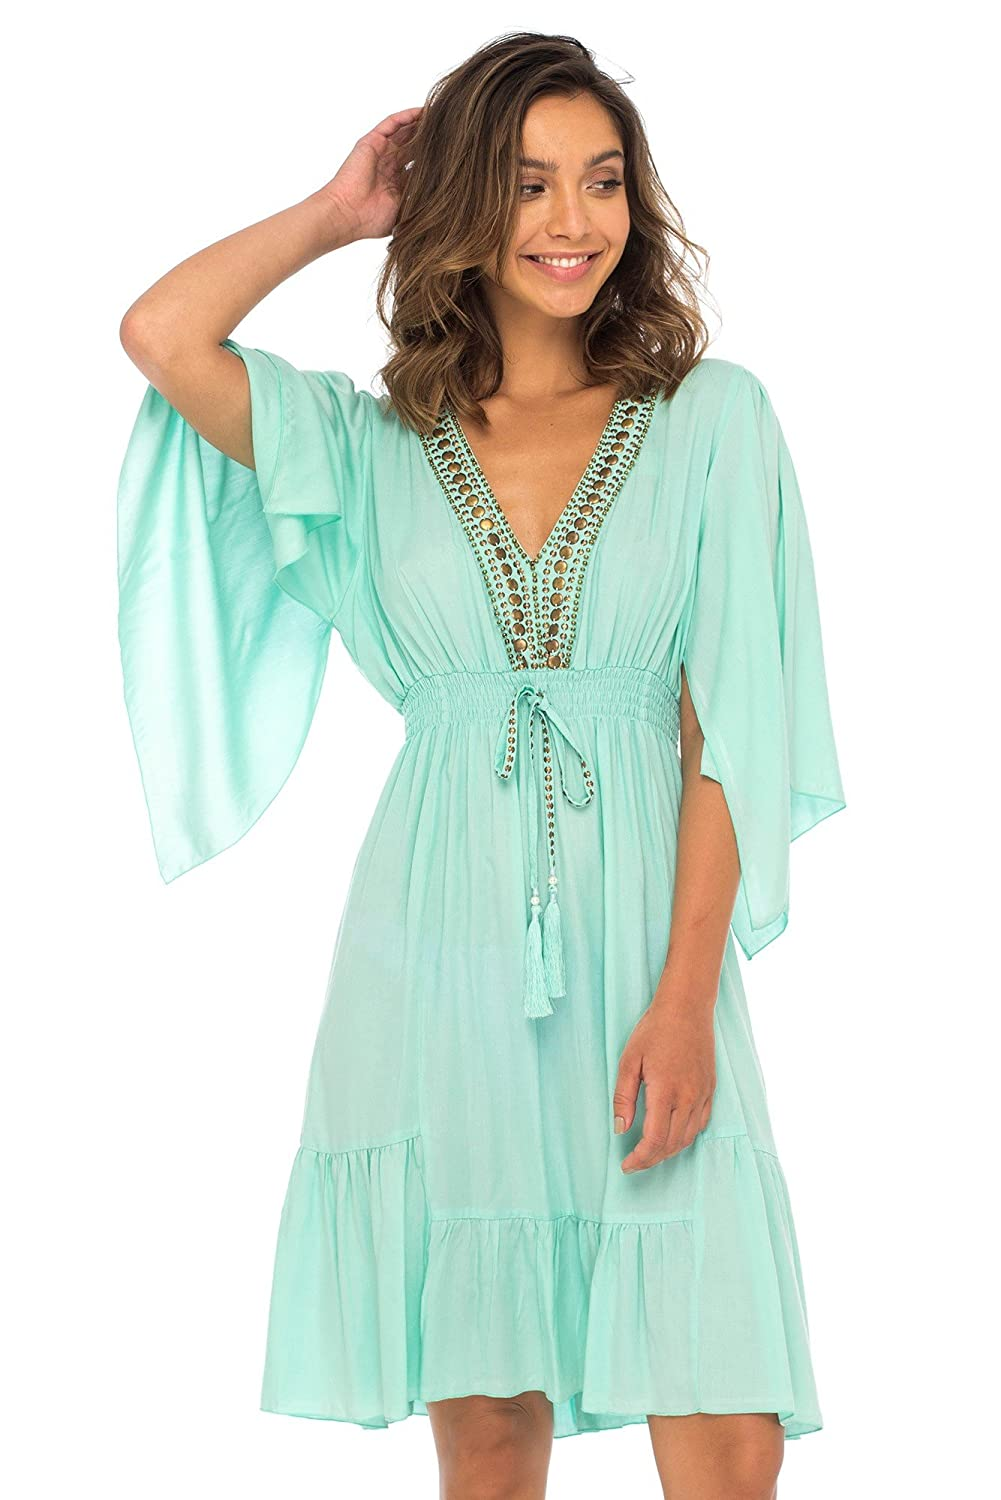 good out x big selection coupon code Back From Bali Womens Short Sundress Flowy Boho Beach Dress with Beaded  Deep V Neck, Casual Sexy Summer Party Dress